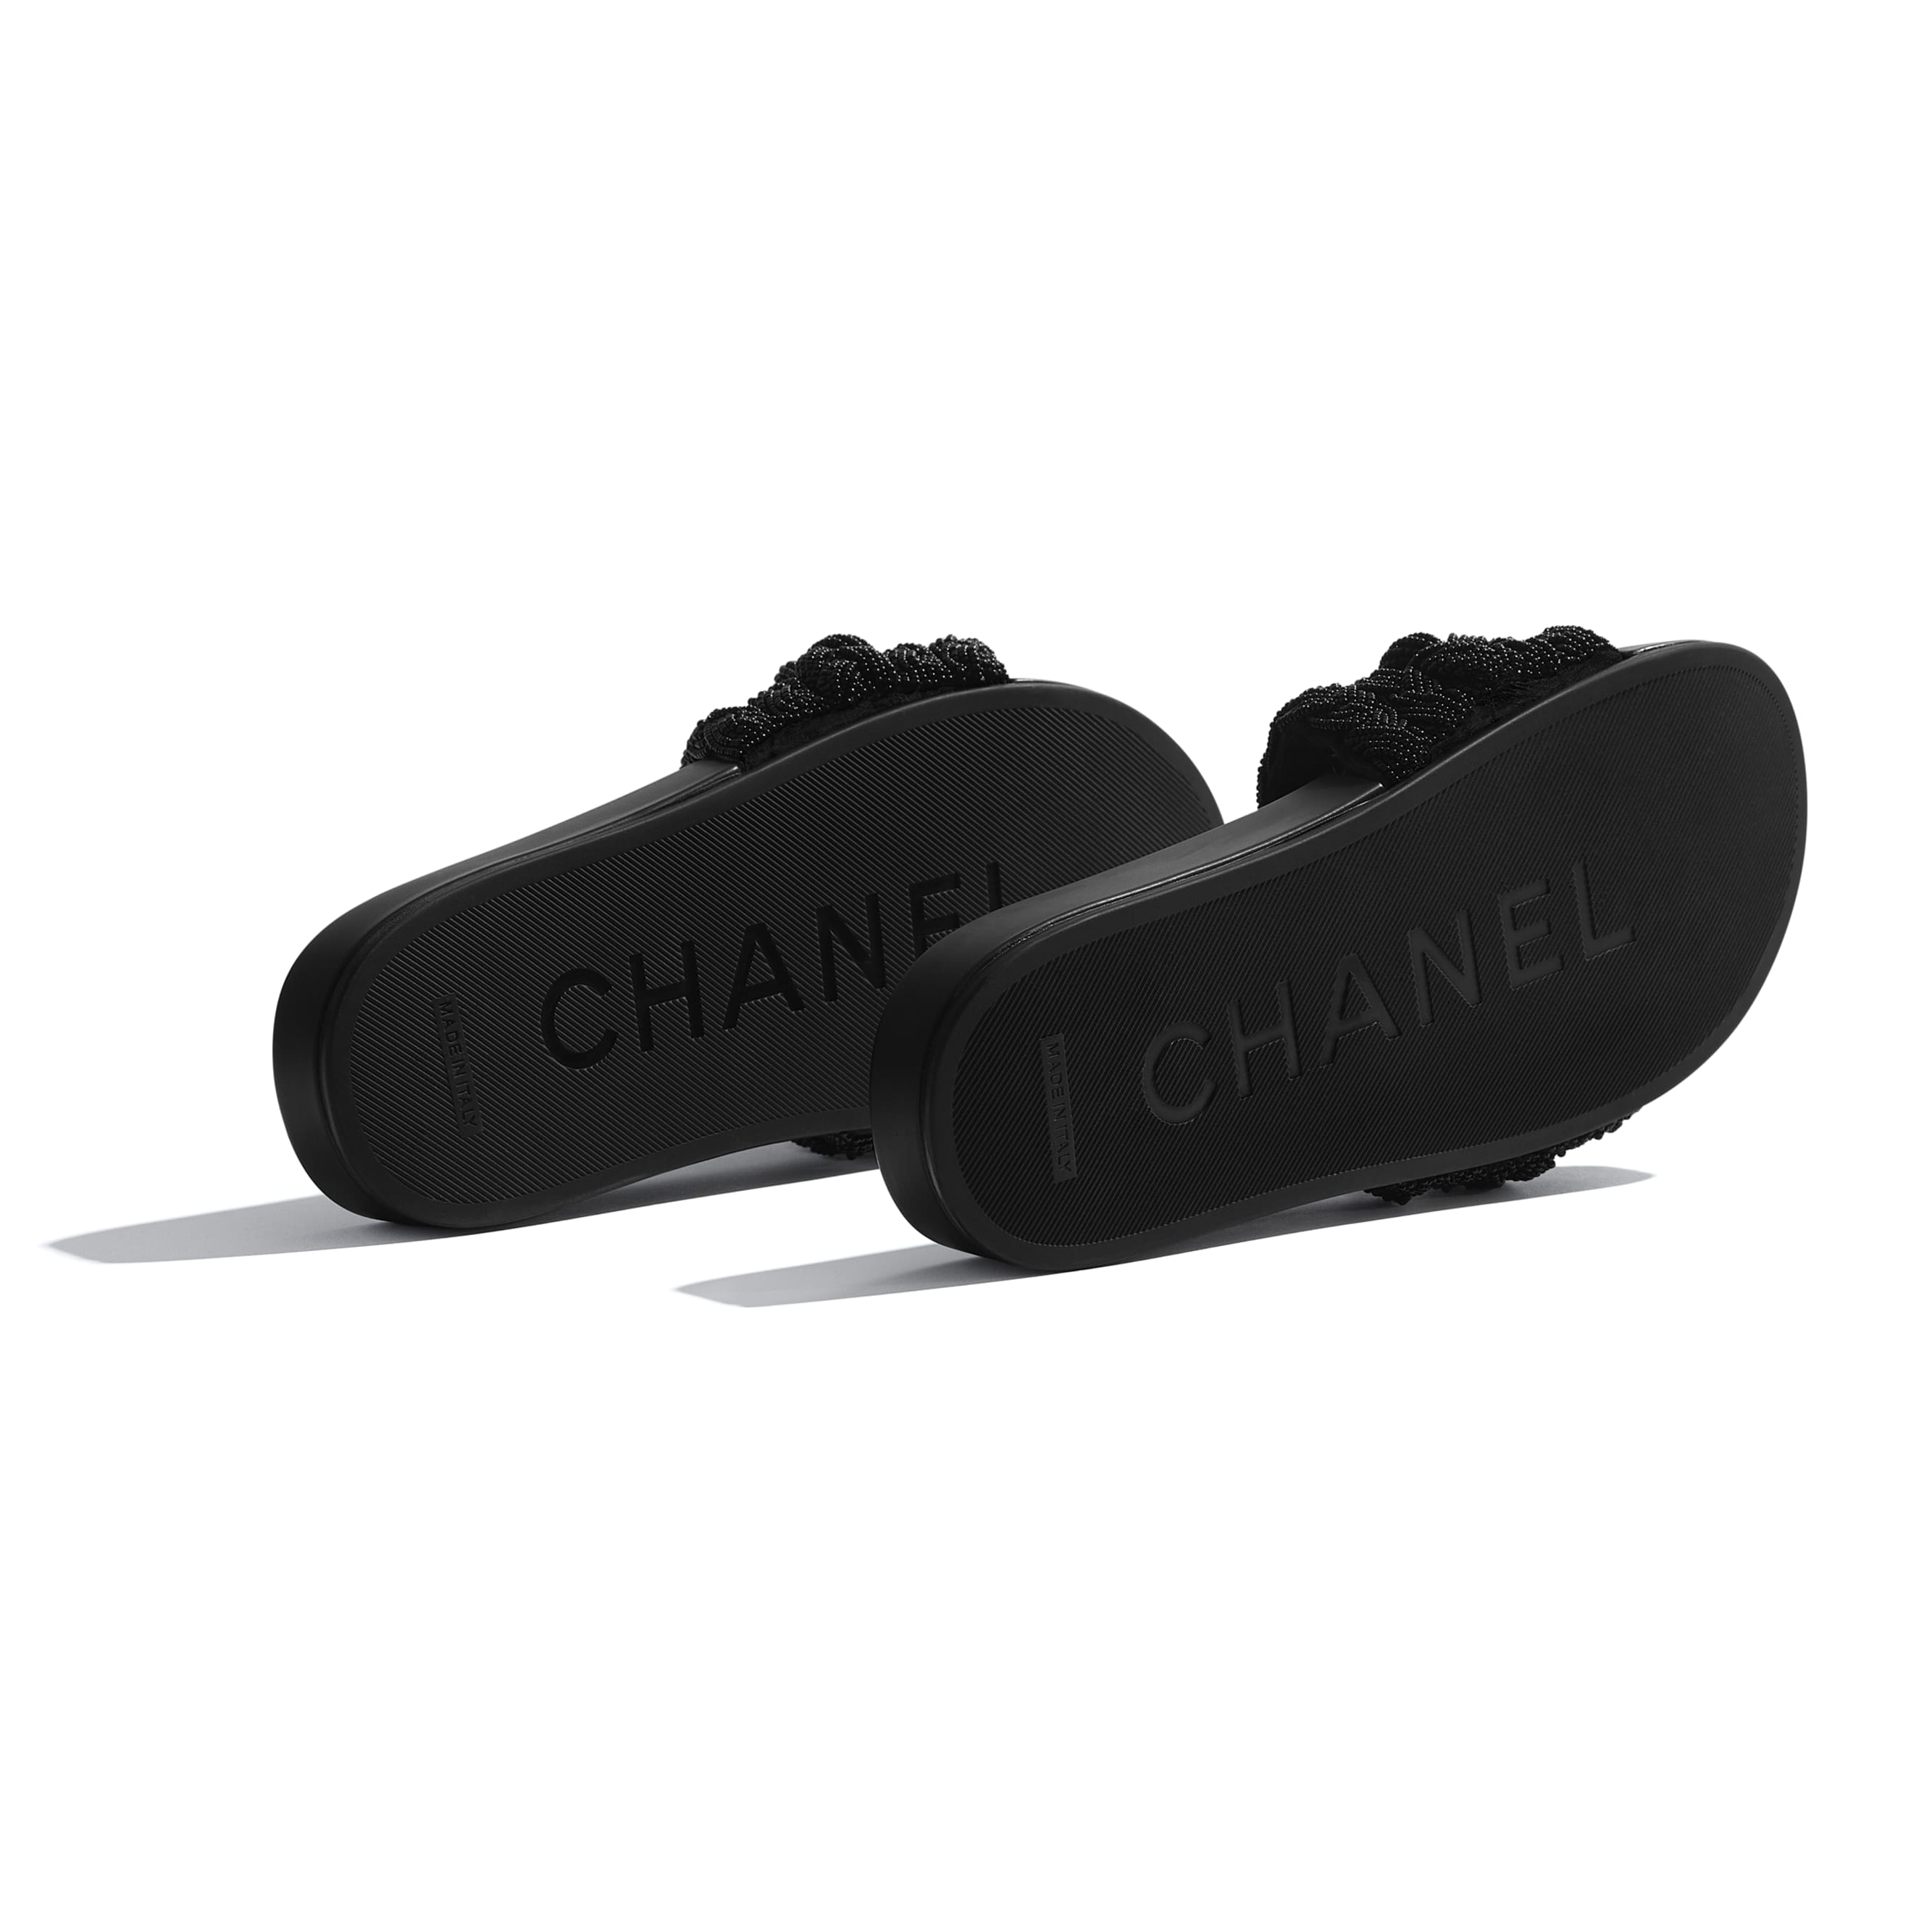 Mules - Black - Pearls & Lambskin - CHANEL - Extra view - see standard sized version